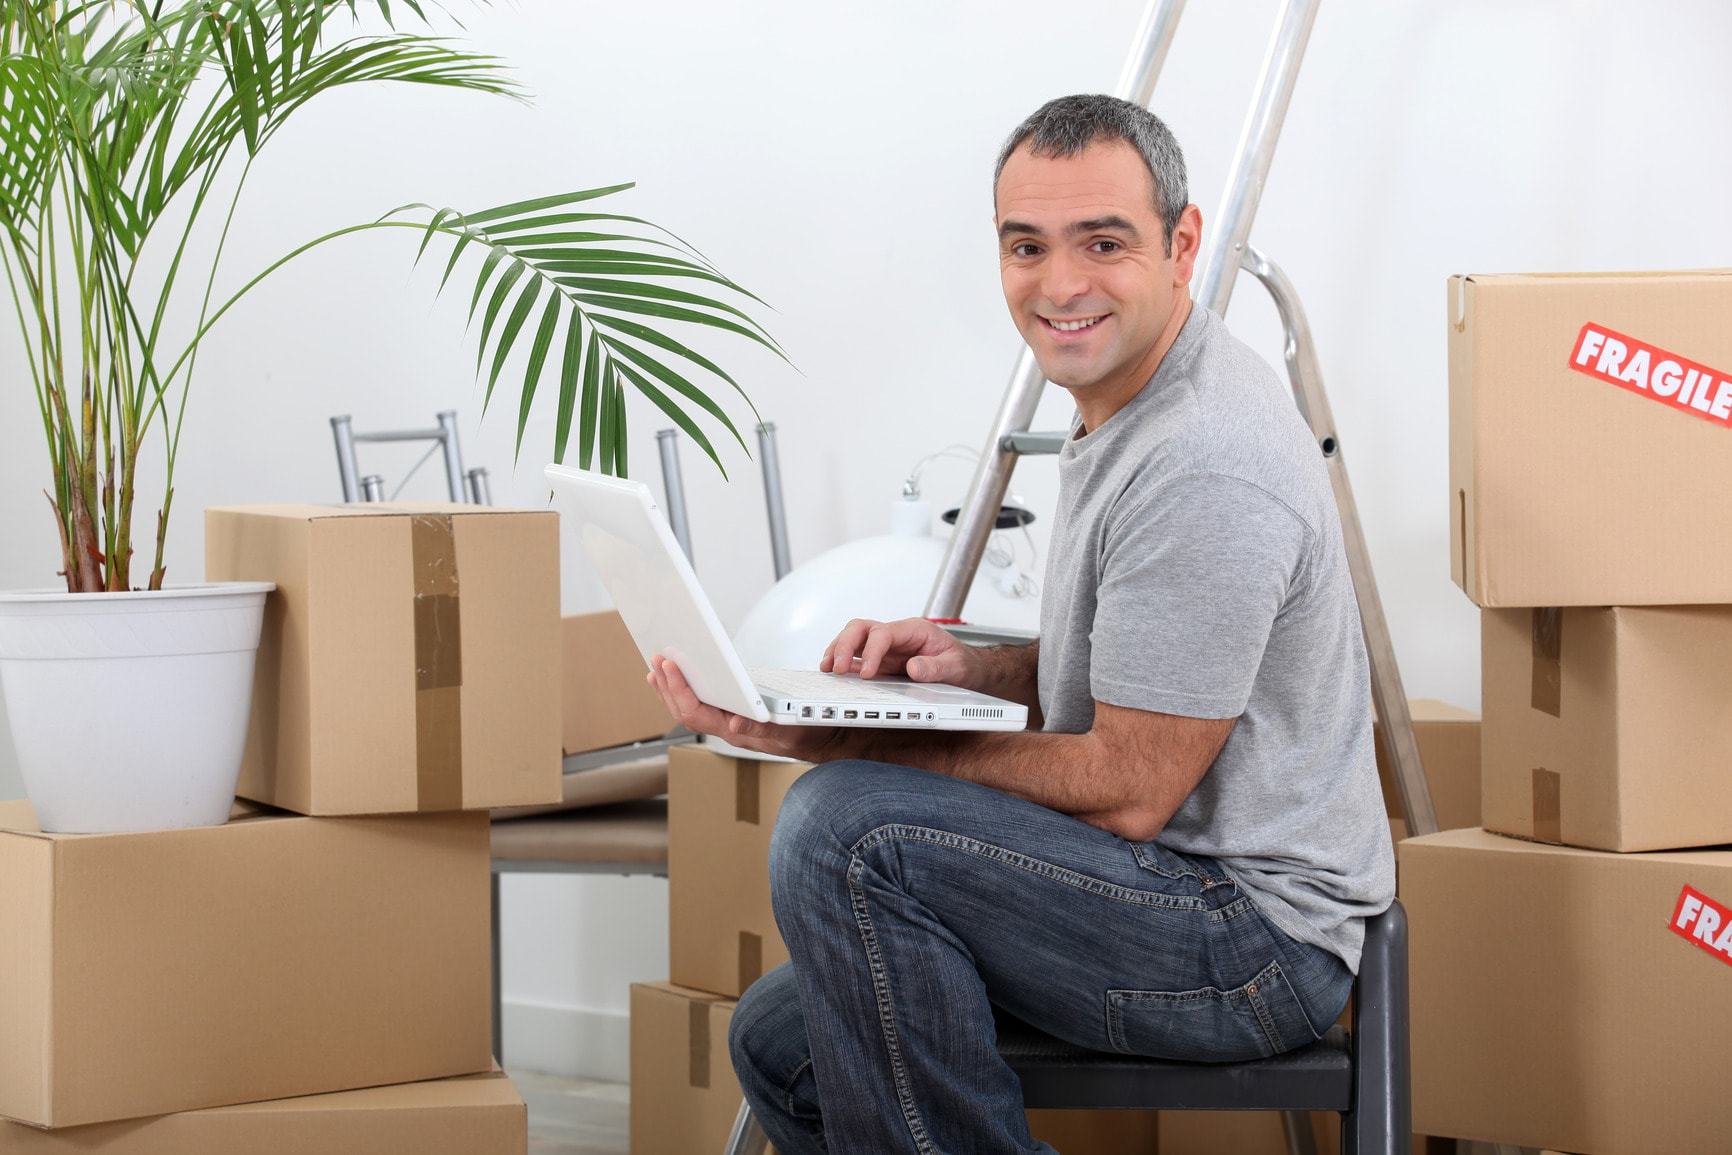 Man using a laptop computer sitting amongst cardboard boxes